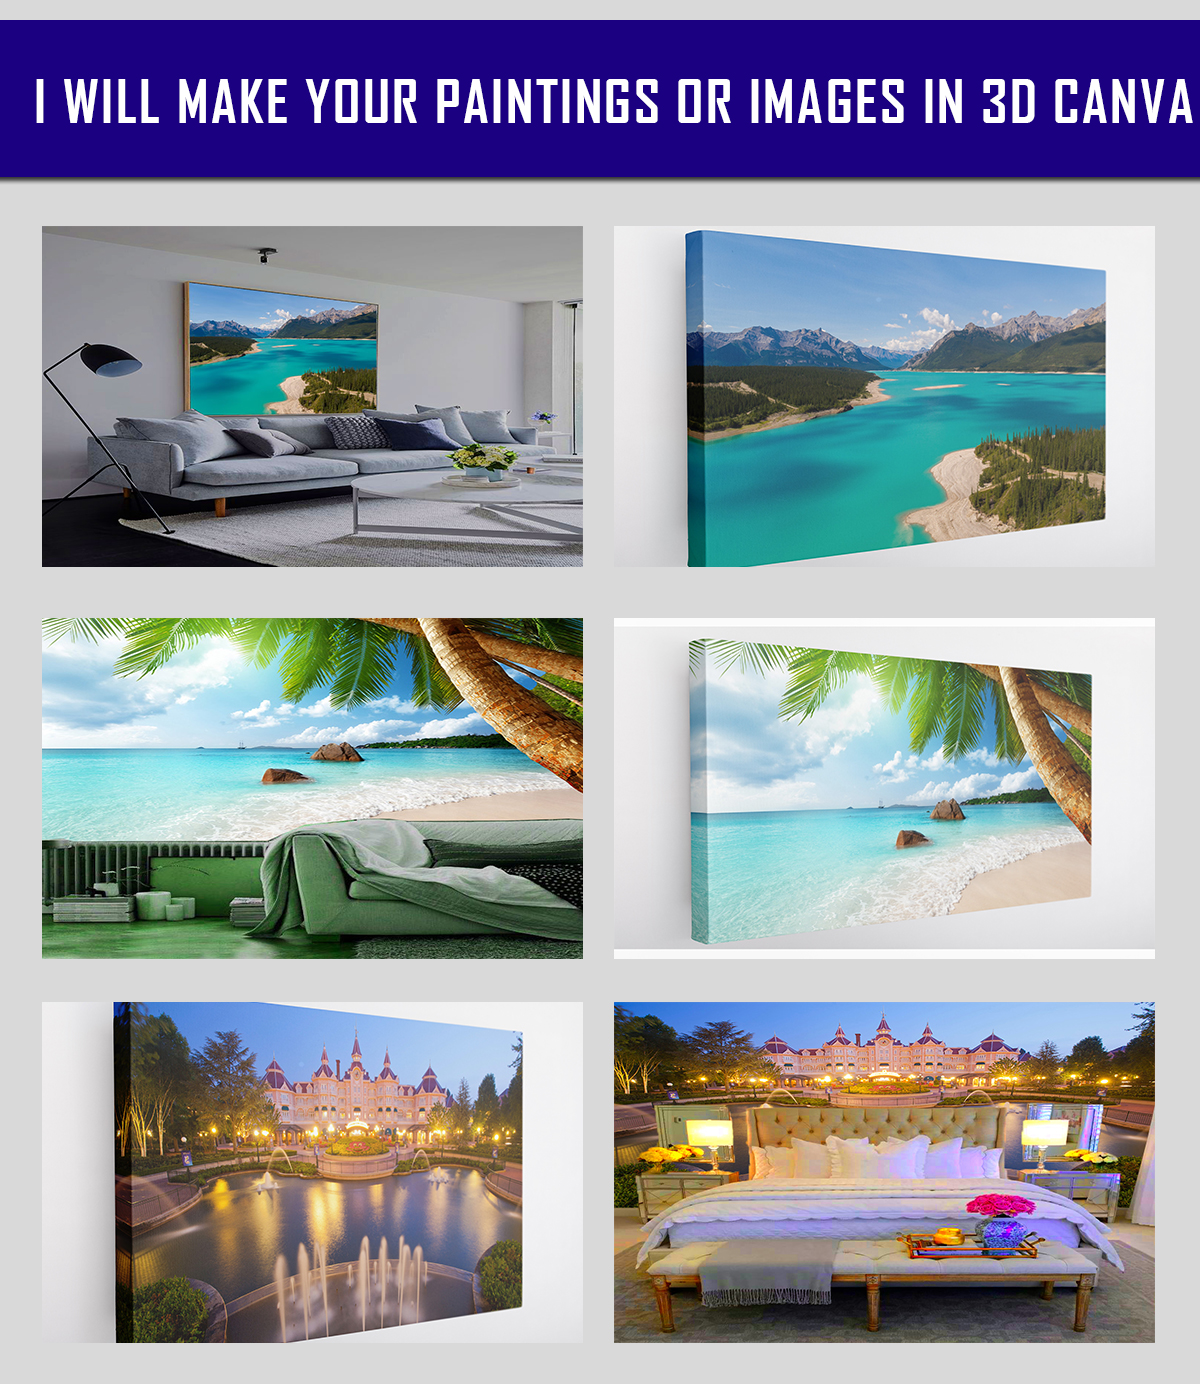 i will make Creative Art Painting Design With 3D canva